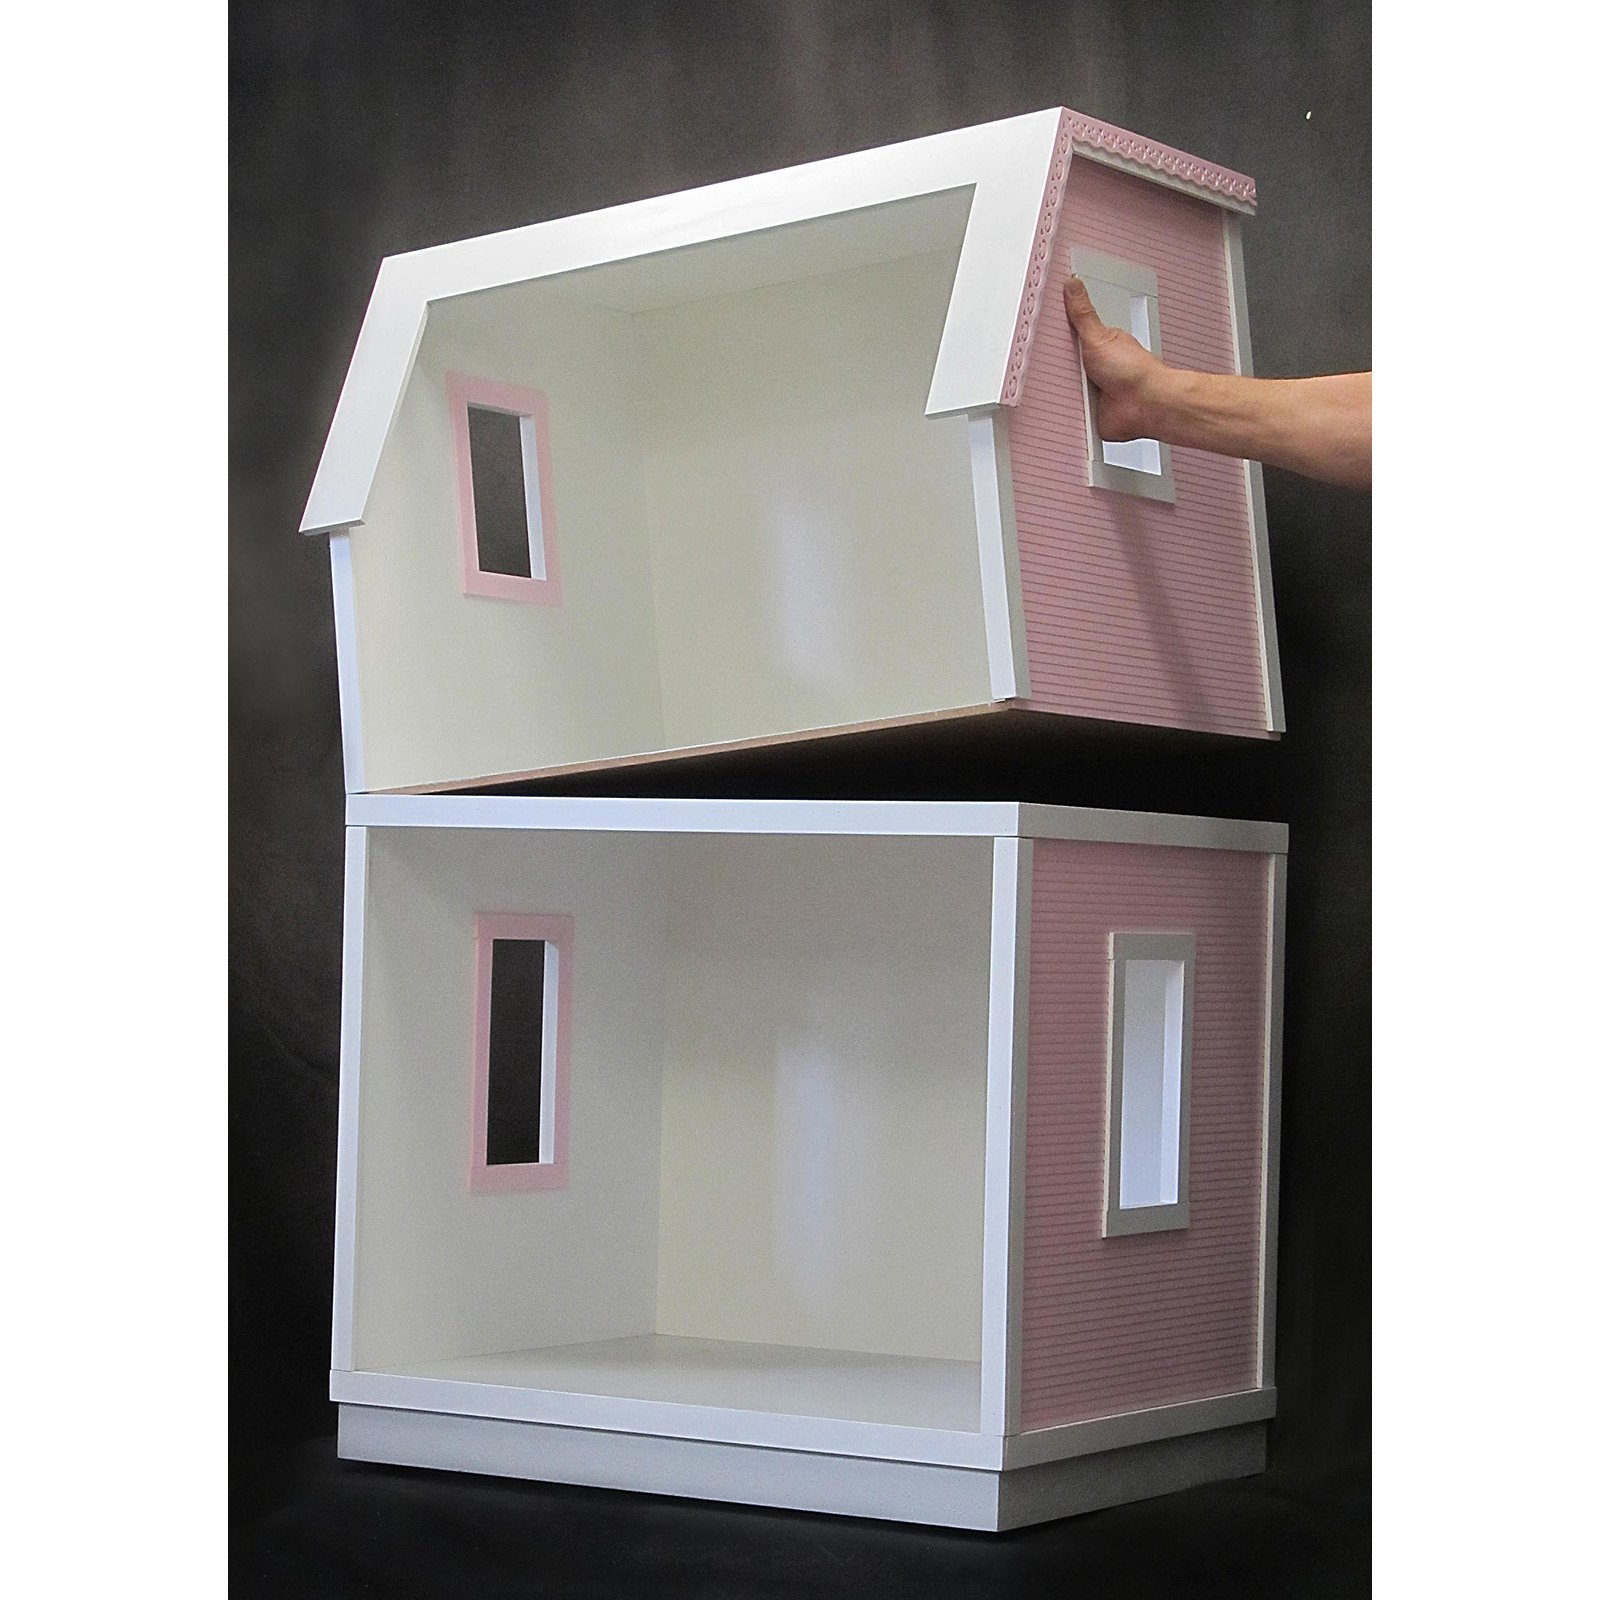 Real Good Toys My Dreamhouse Dollhouse Kit for 18 in. Dolls ...